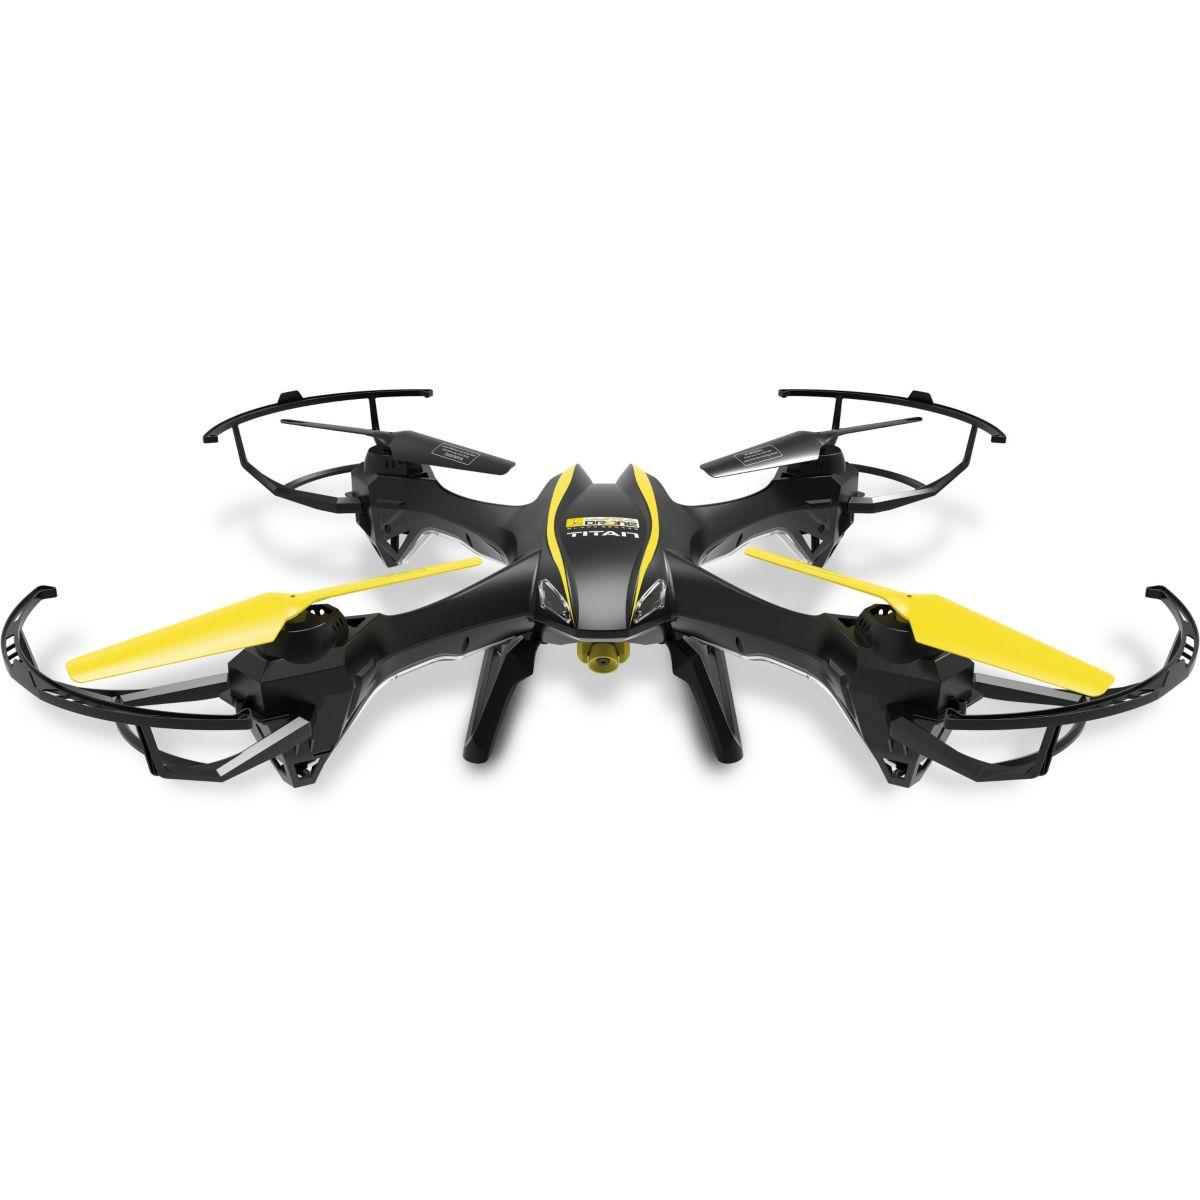 Drone mondo motors ultradrone titan r/c (photo)